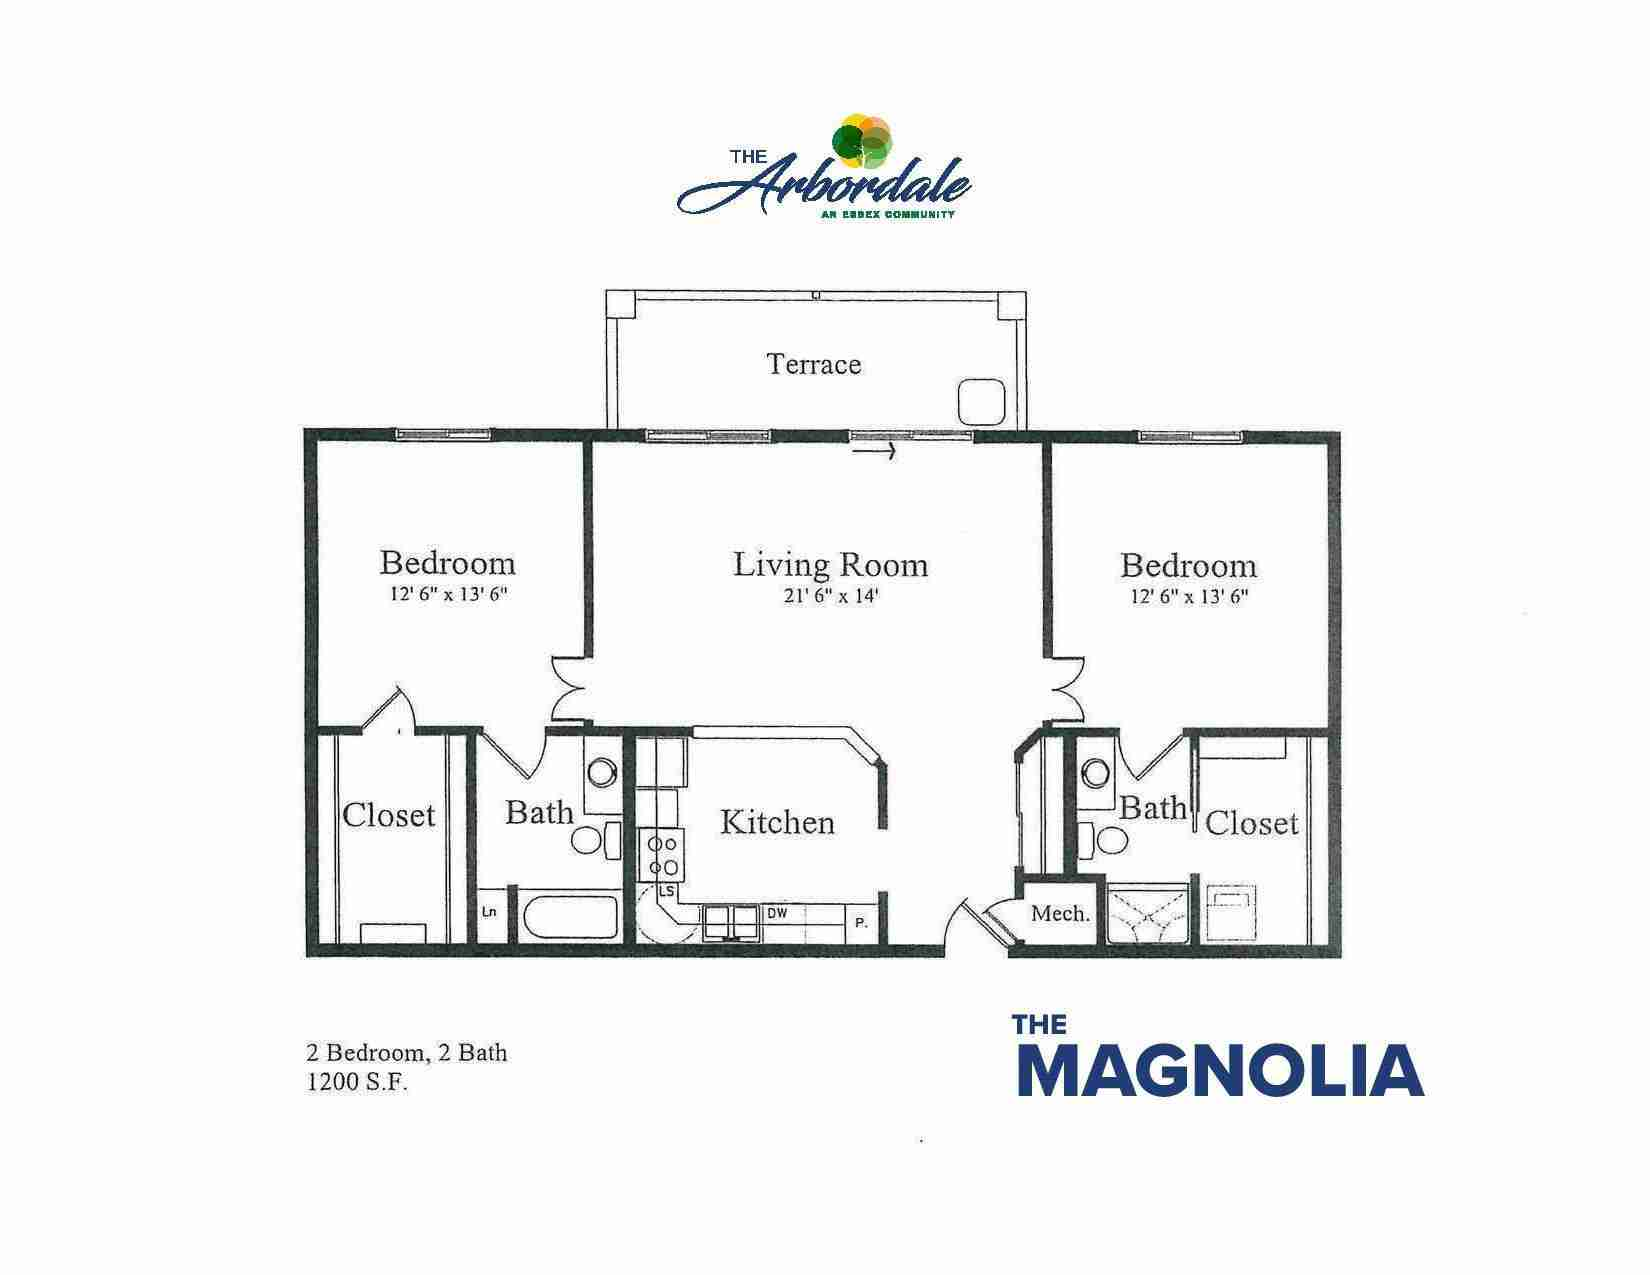 the magnolia floor plan, 2 bedroom, 2 bath, 1200 sq ft